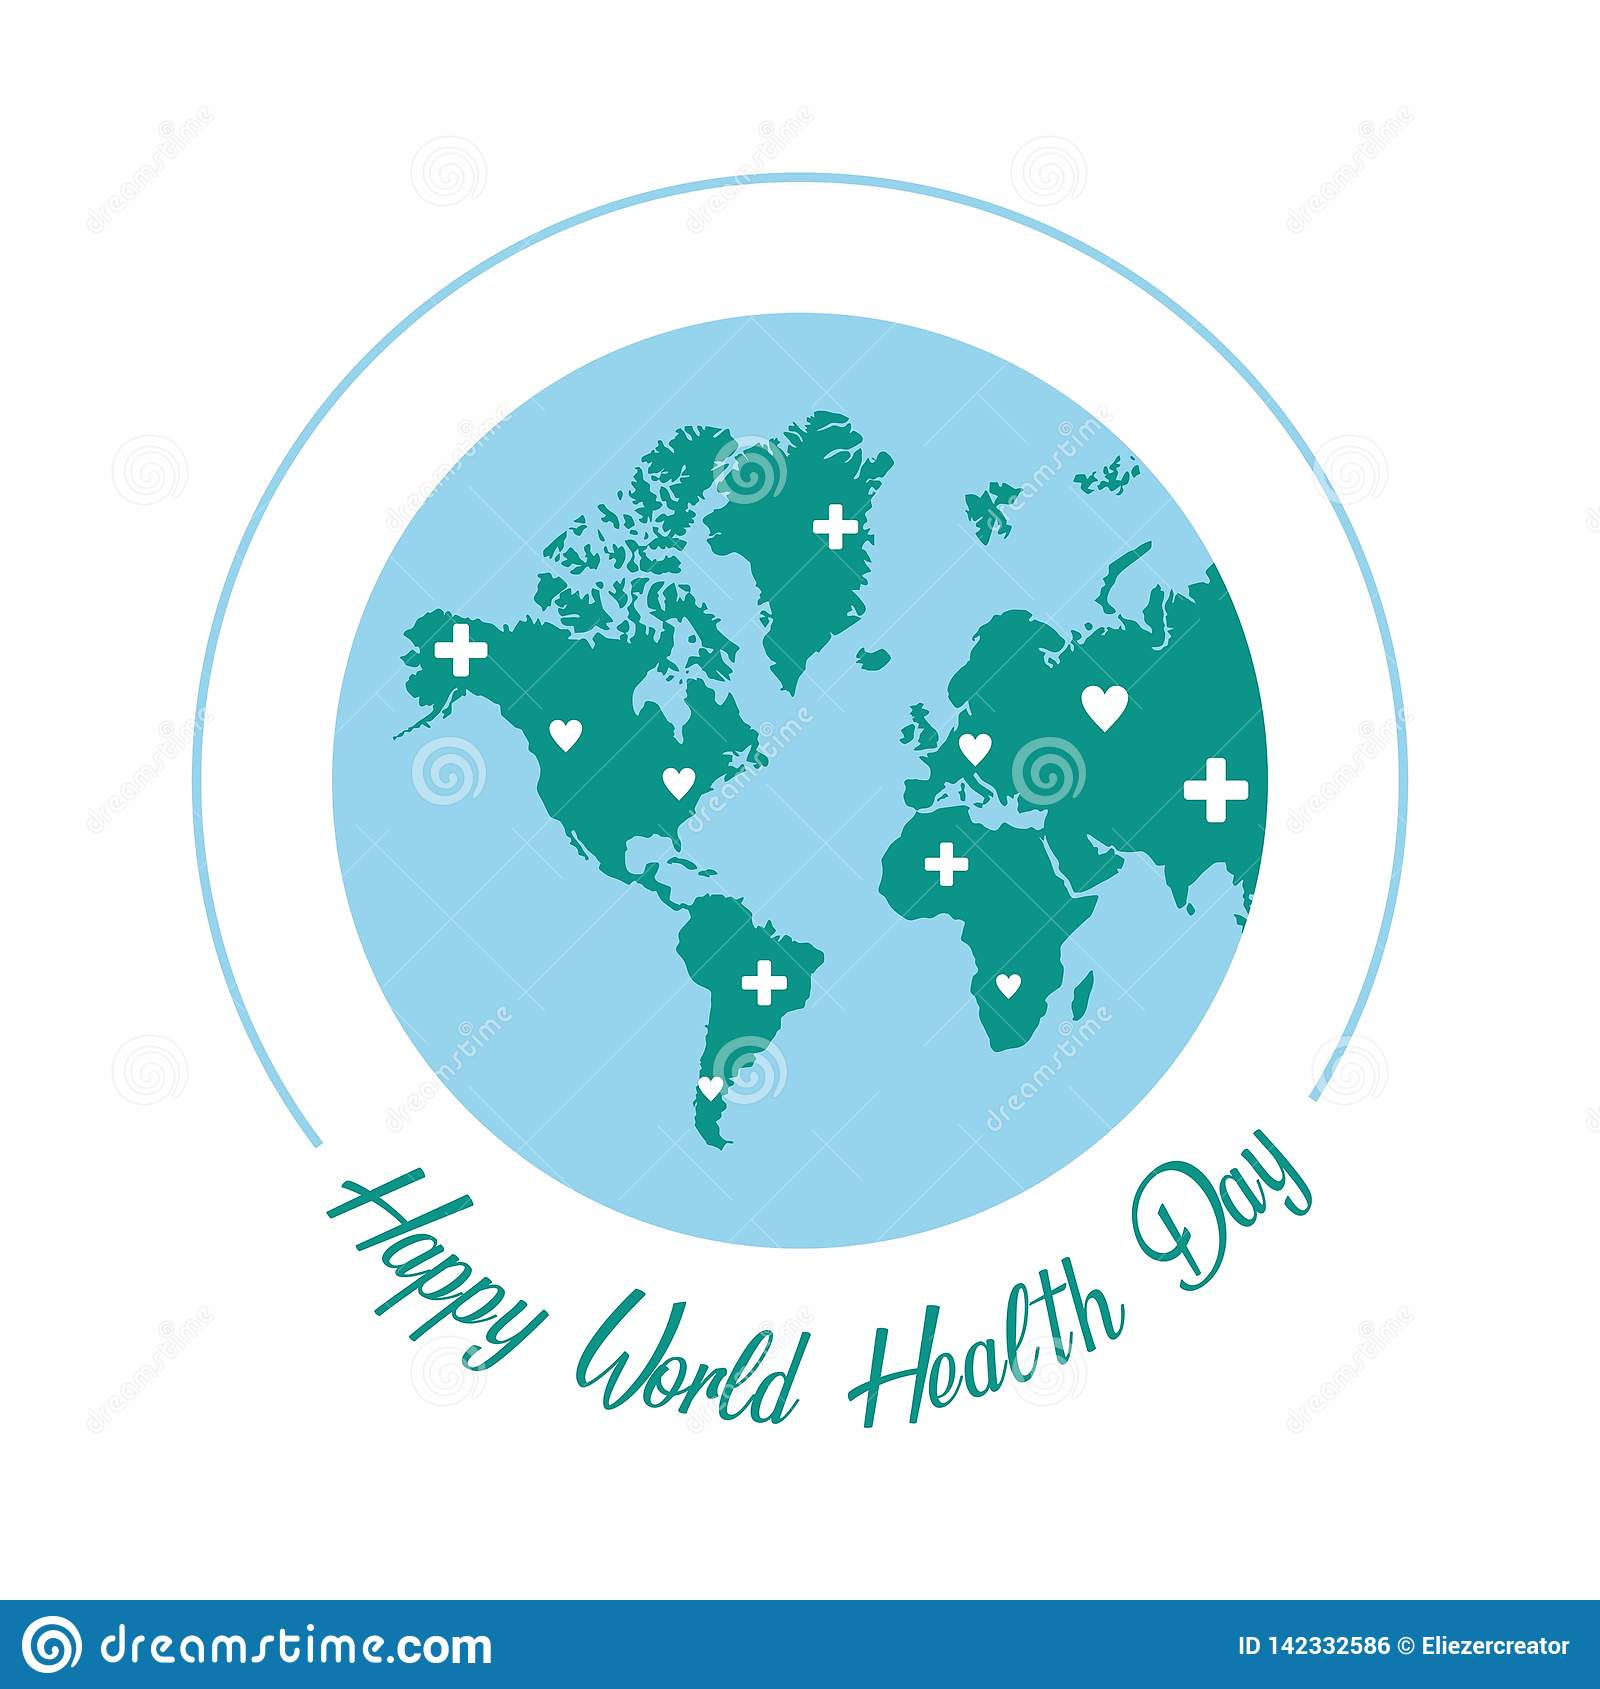 World Health Day Red Apple Cartoon Vector Illustration. Royalty Free  Cliparts, Vectors, And Stock Illustration. Image 101097470.